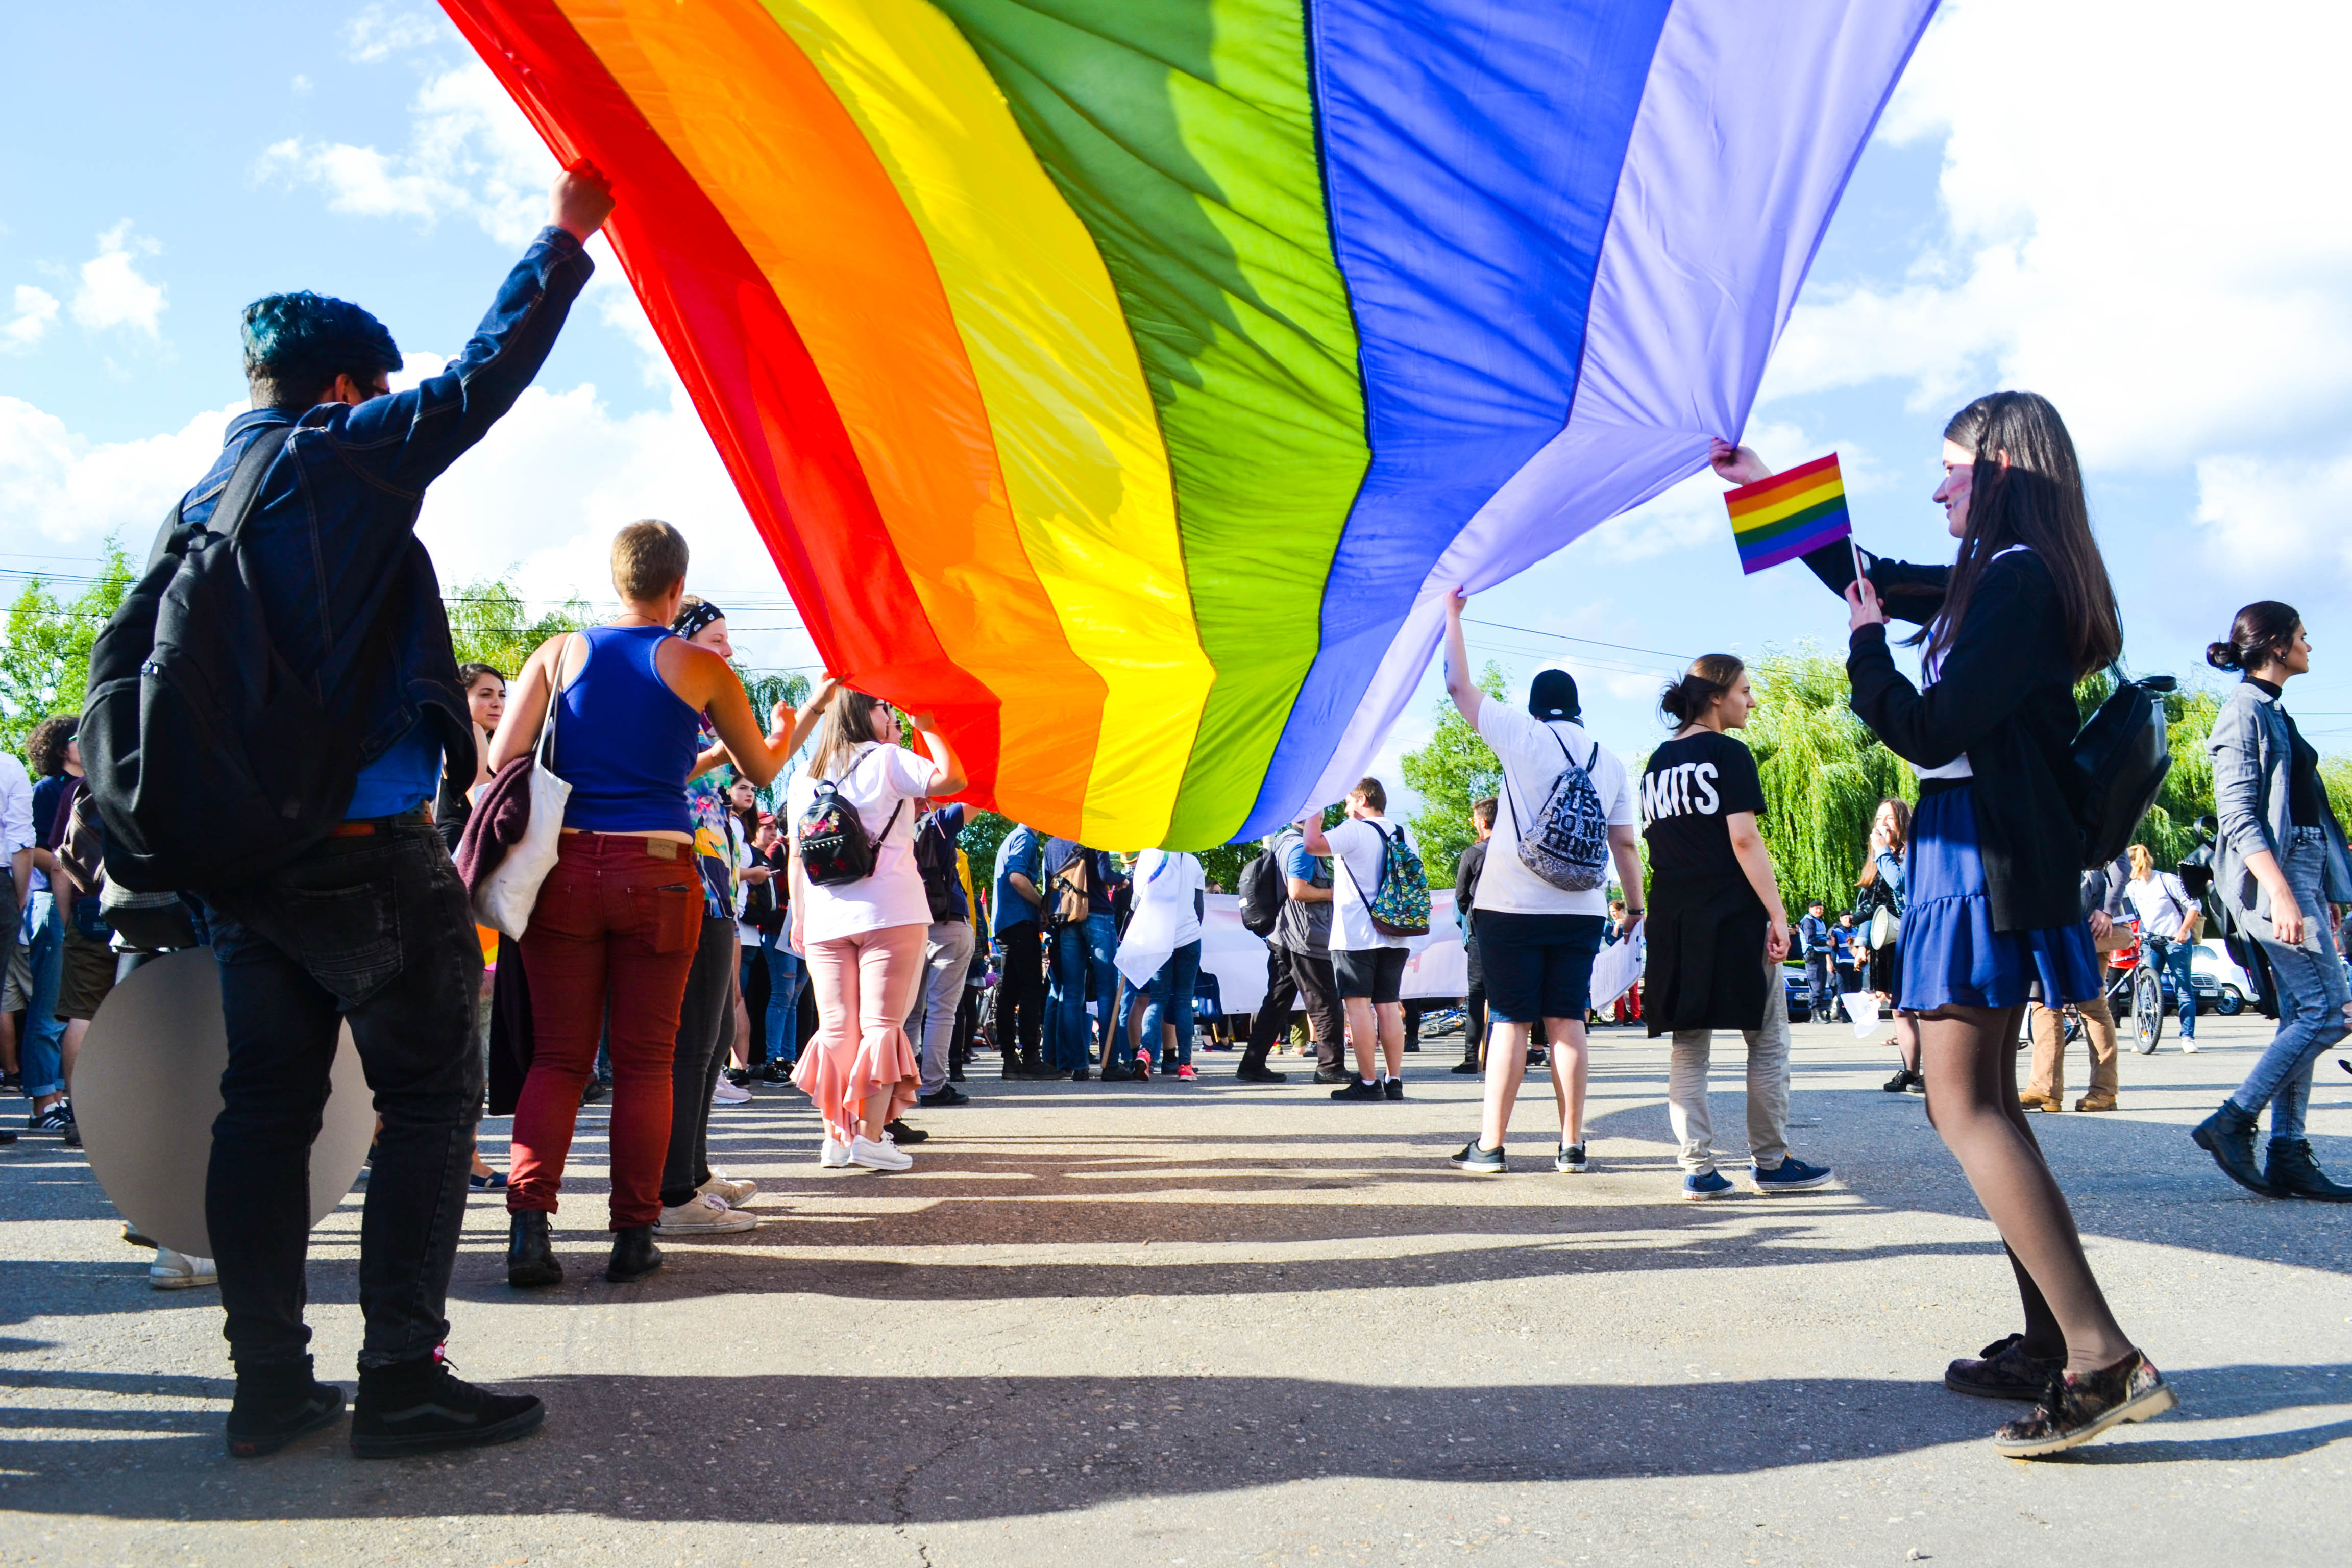 ROMANIA: hate speech on the rise against LGBT community and activists